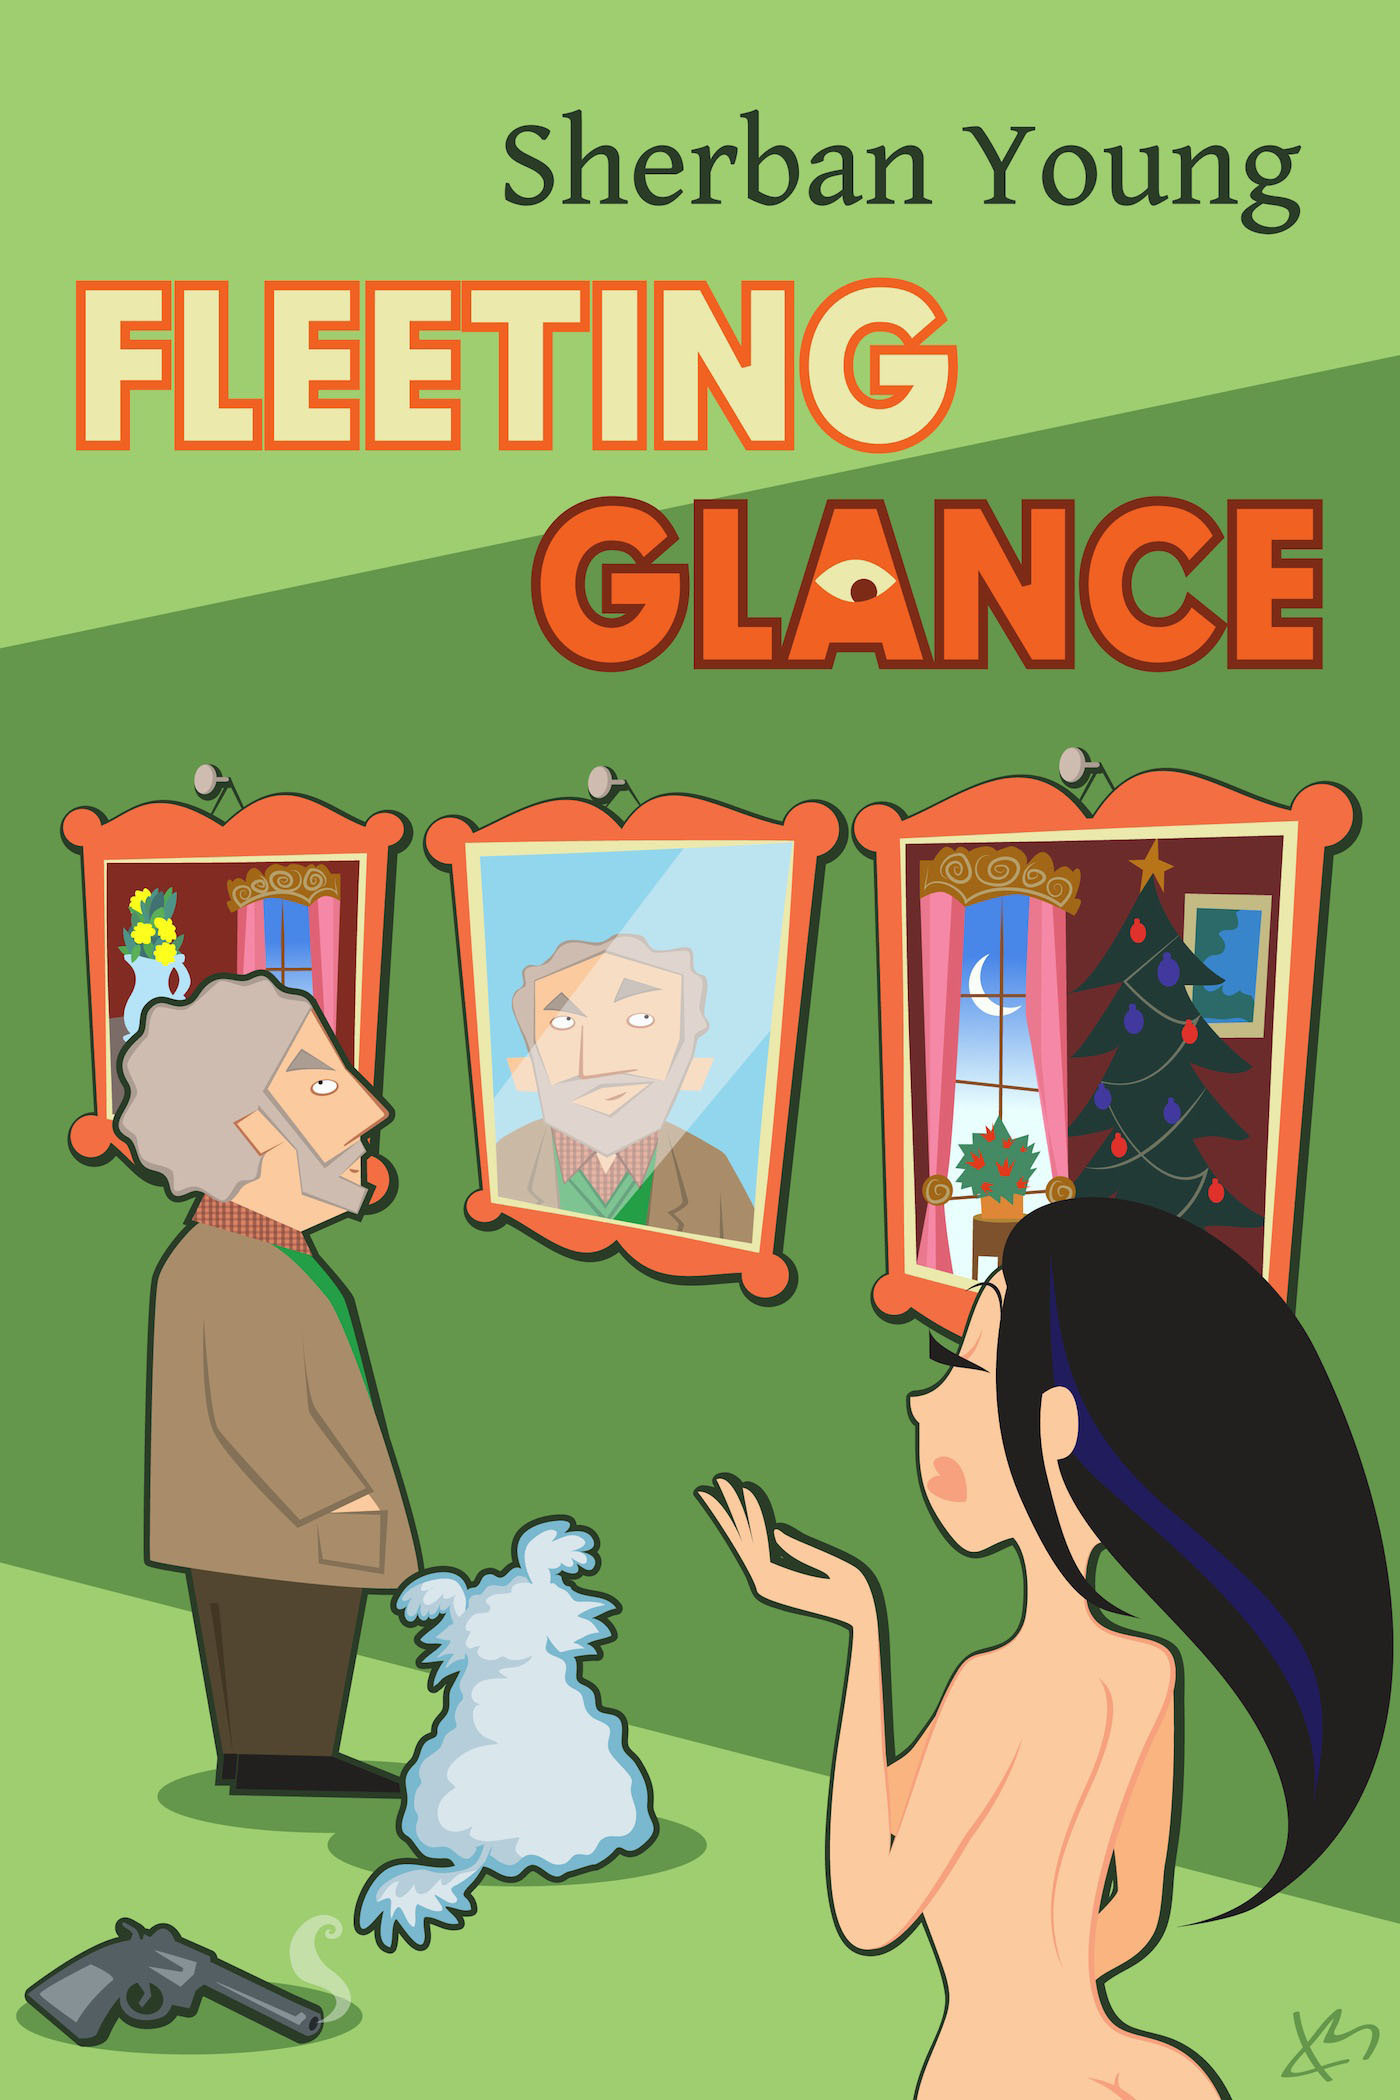 Second Book of Sherban Young's Enescu Fleet Series, 'Fleeting Glance,' Named Best Books of 2013